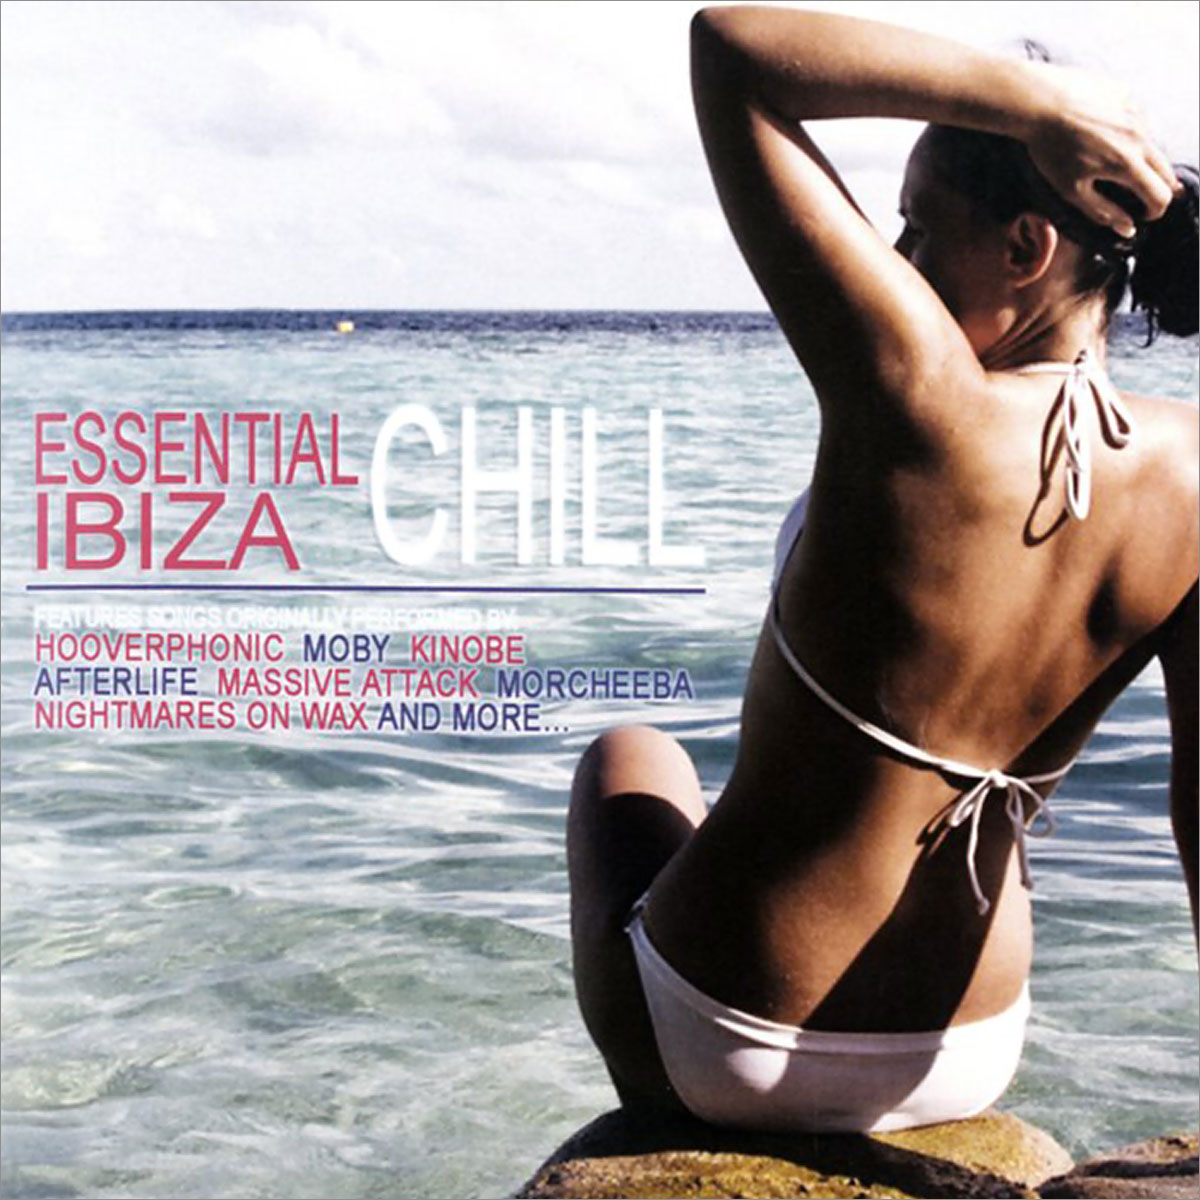 Essential Ibiza Chill